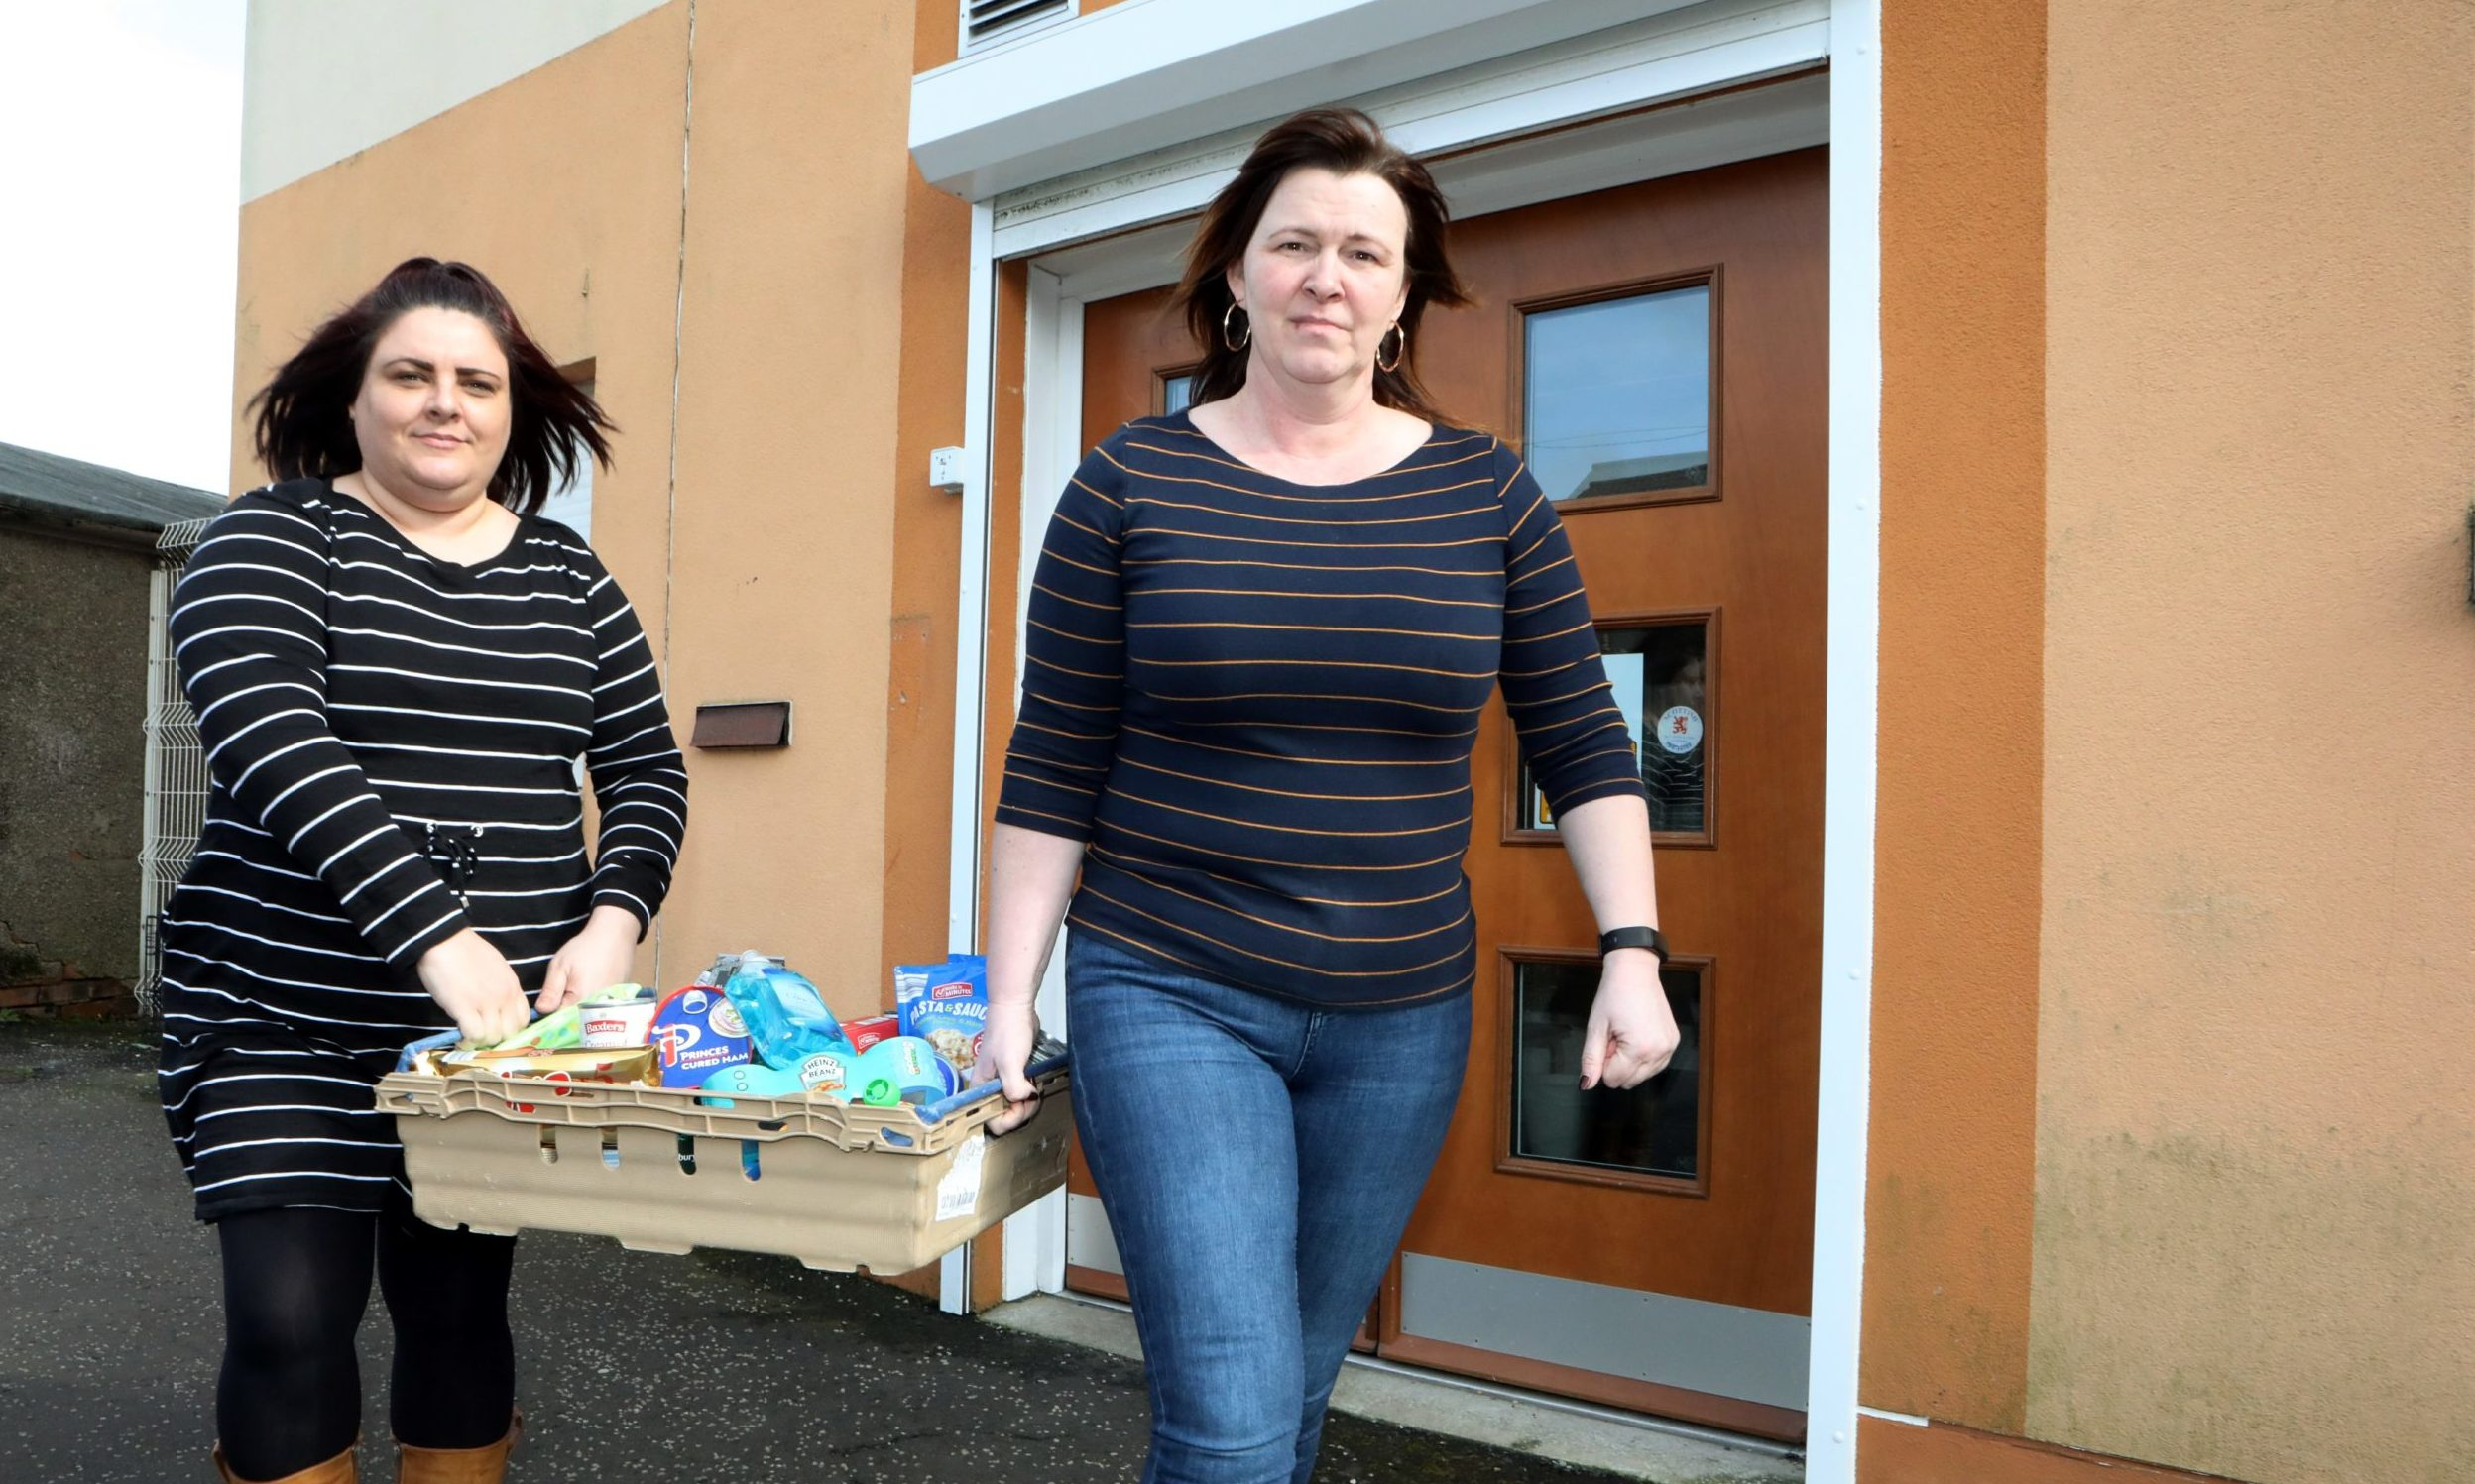 Pauline Buchan & Lana Moffat helping the self-isolated in Kirkcaldy on Tuesday.